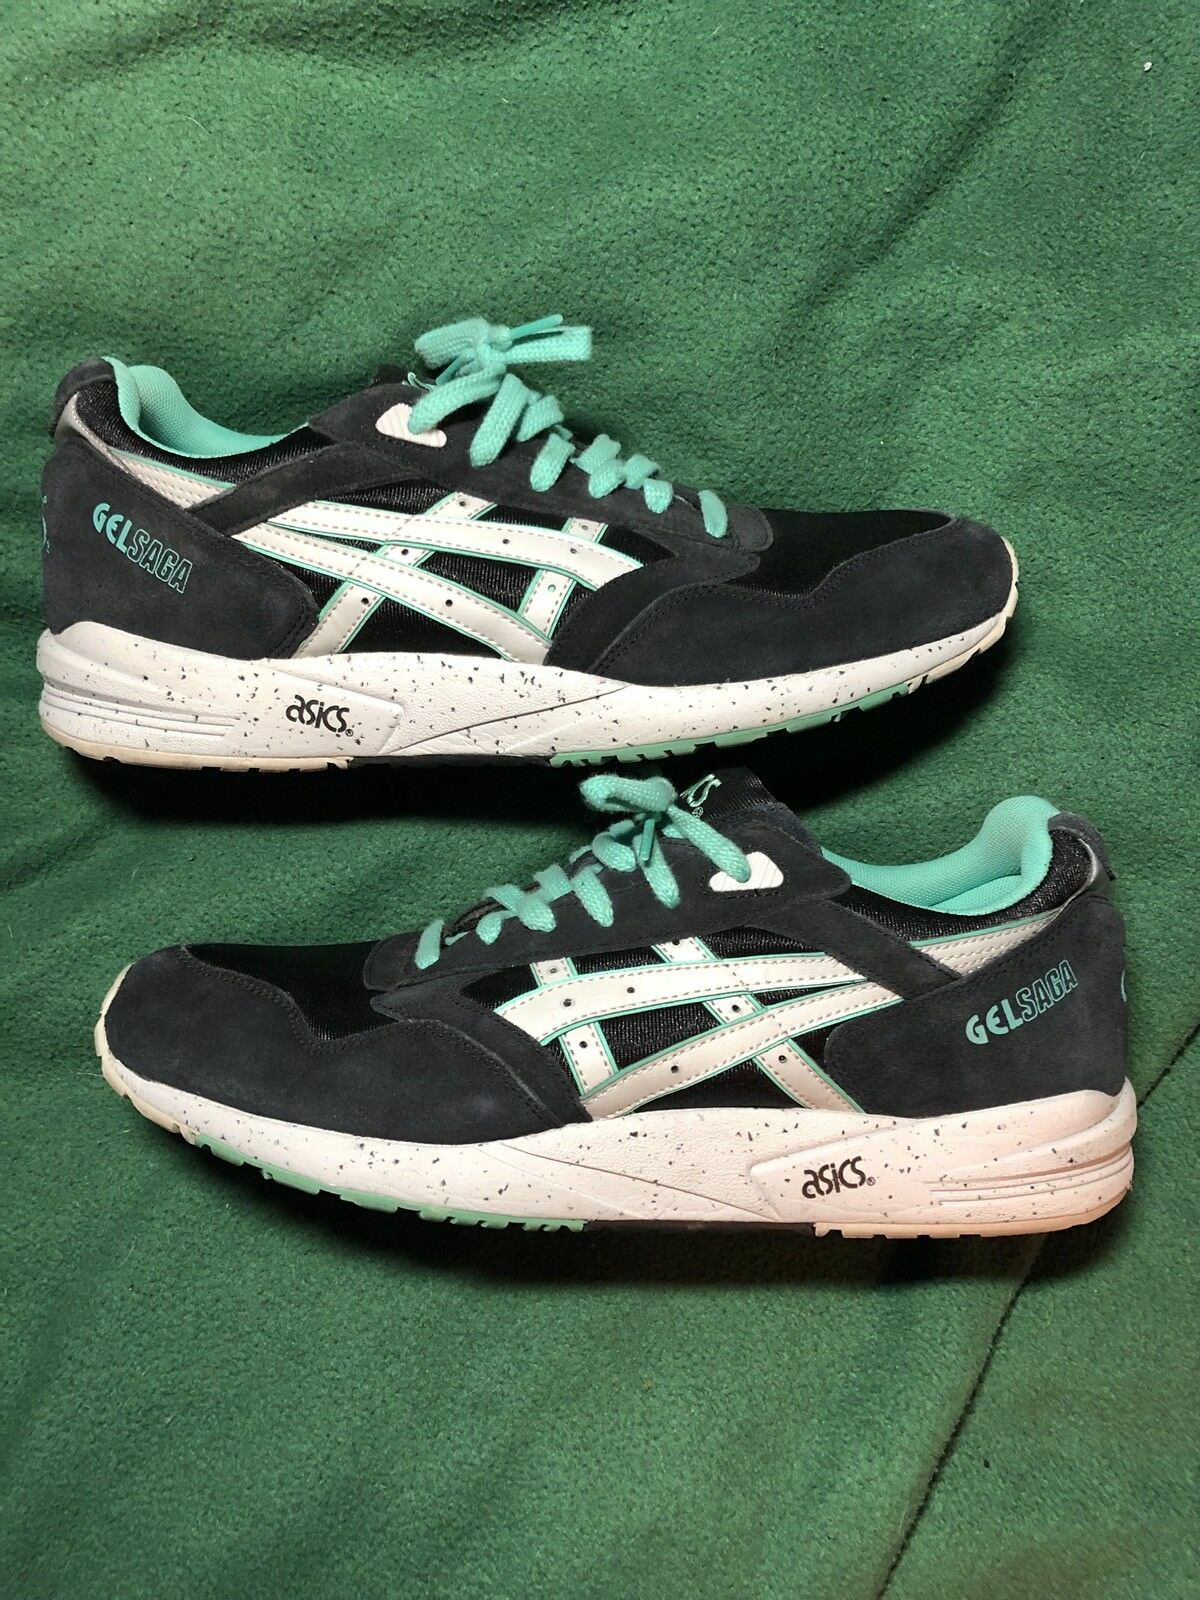 ASICS Gel Saga Mint/Blue Size 12